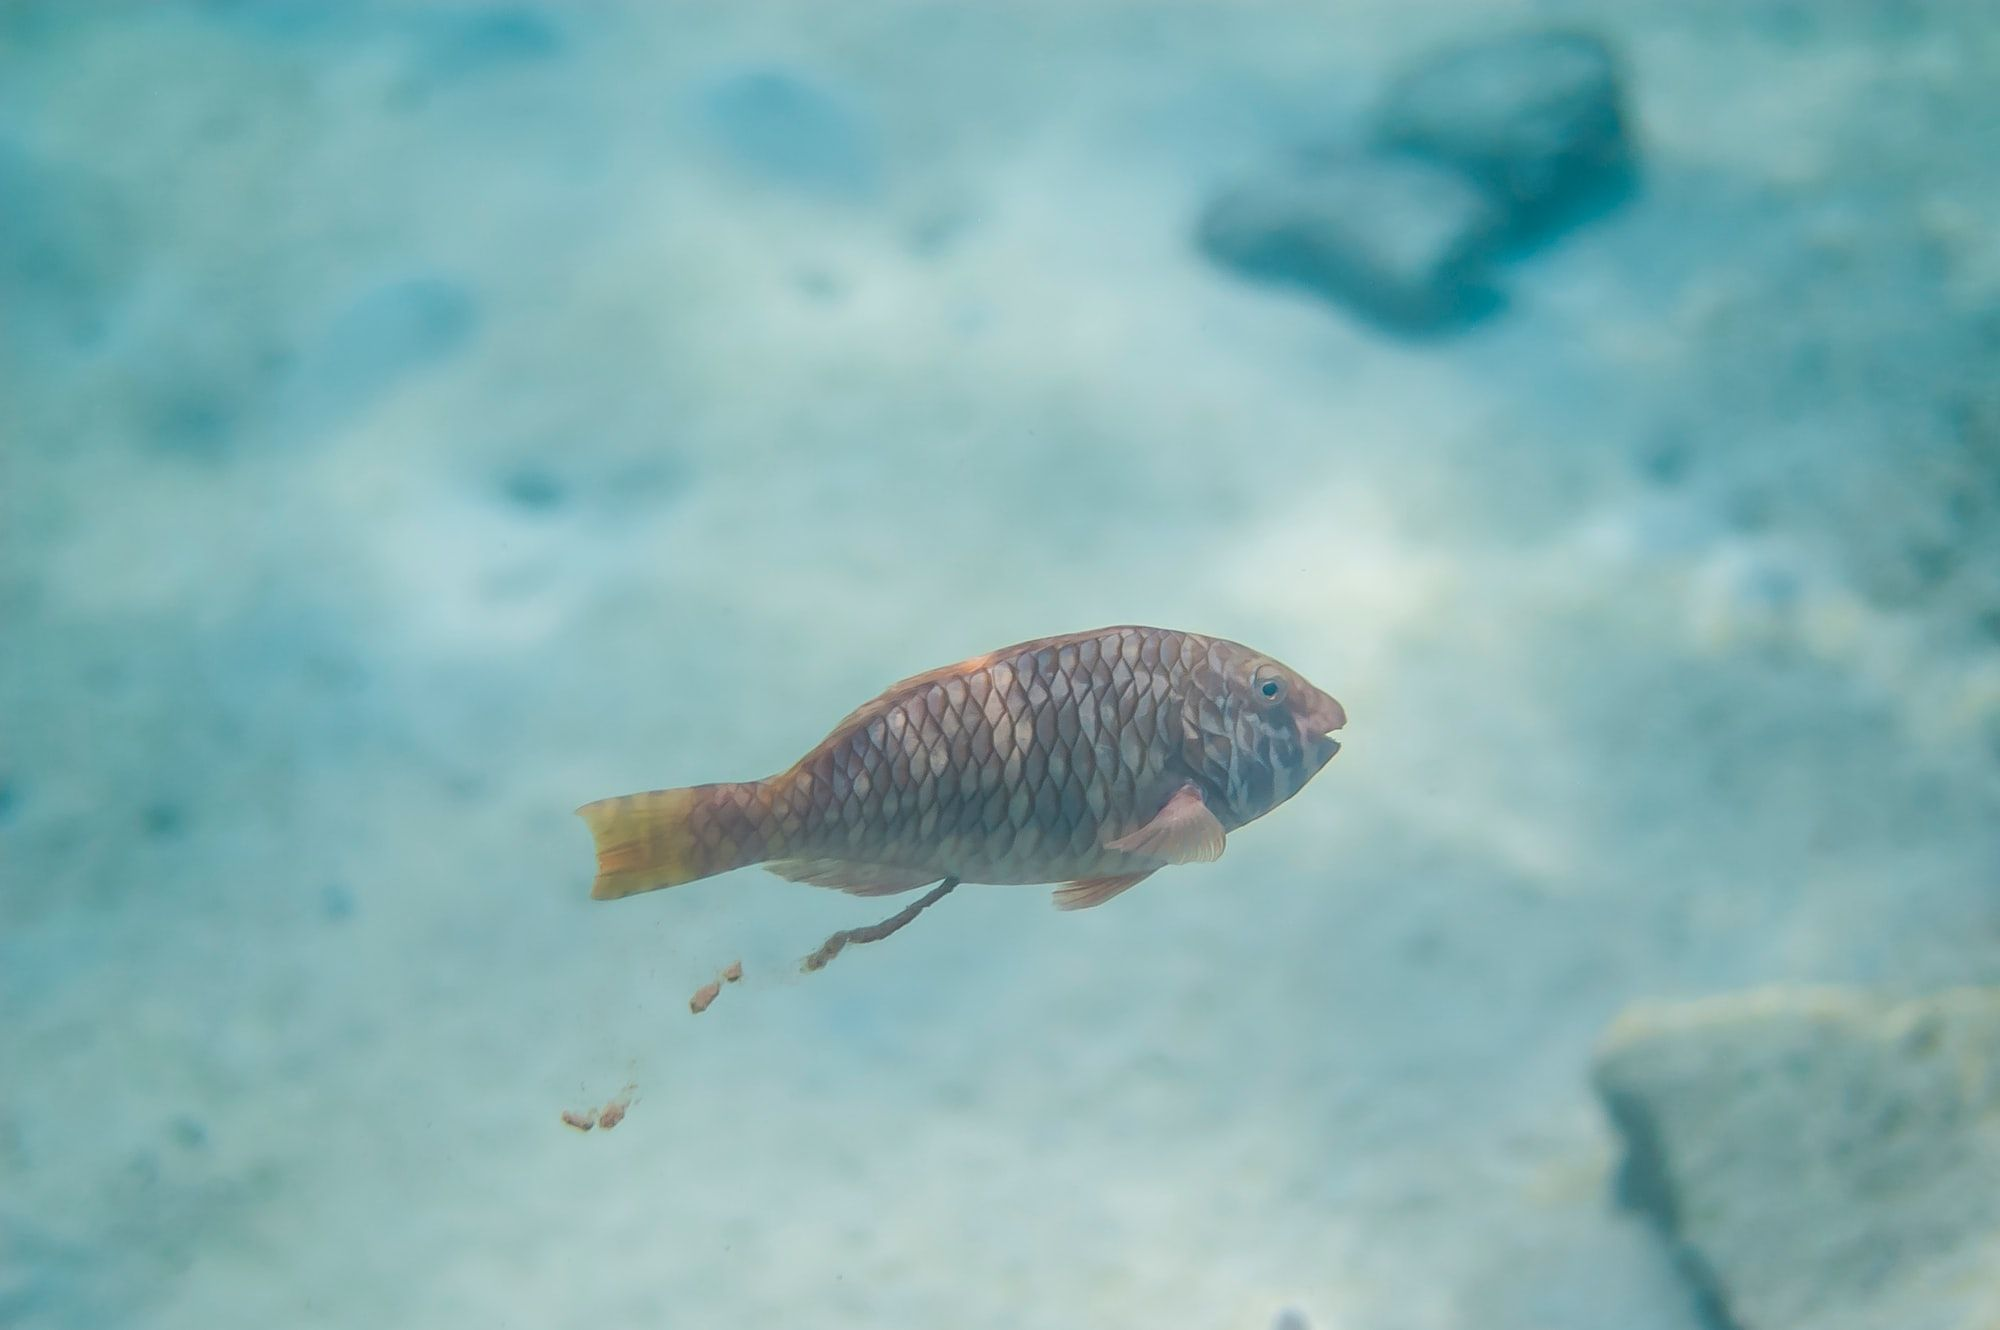 A brown parrot fish happily pooping in the sea